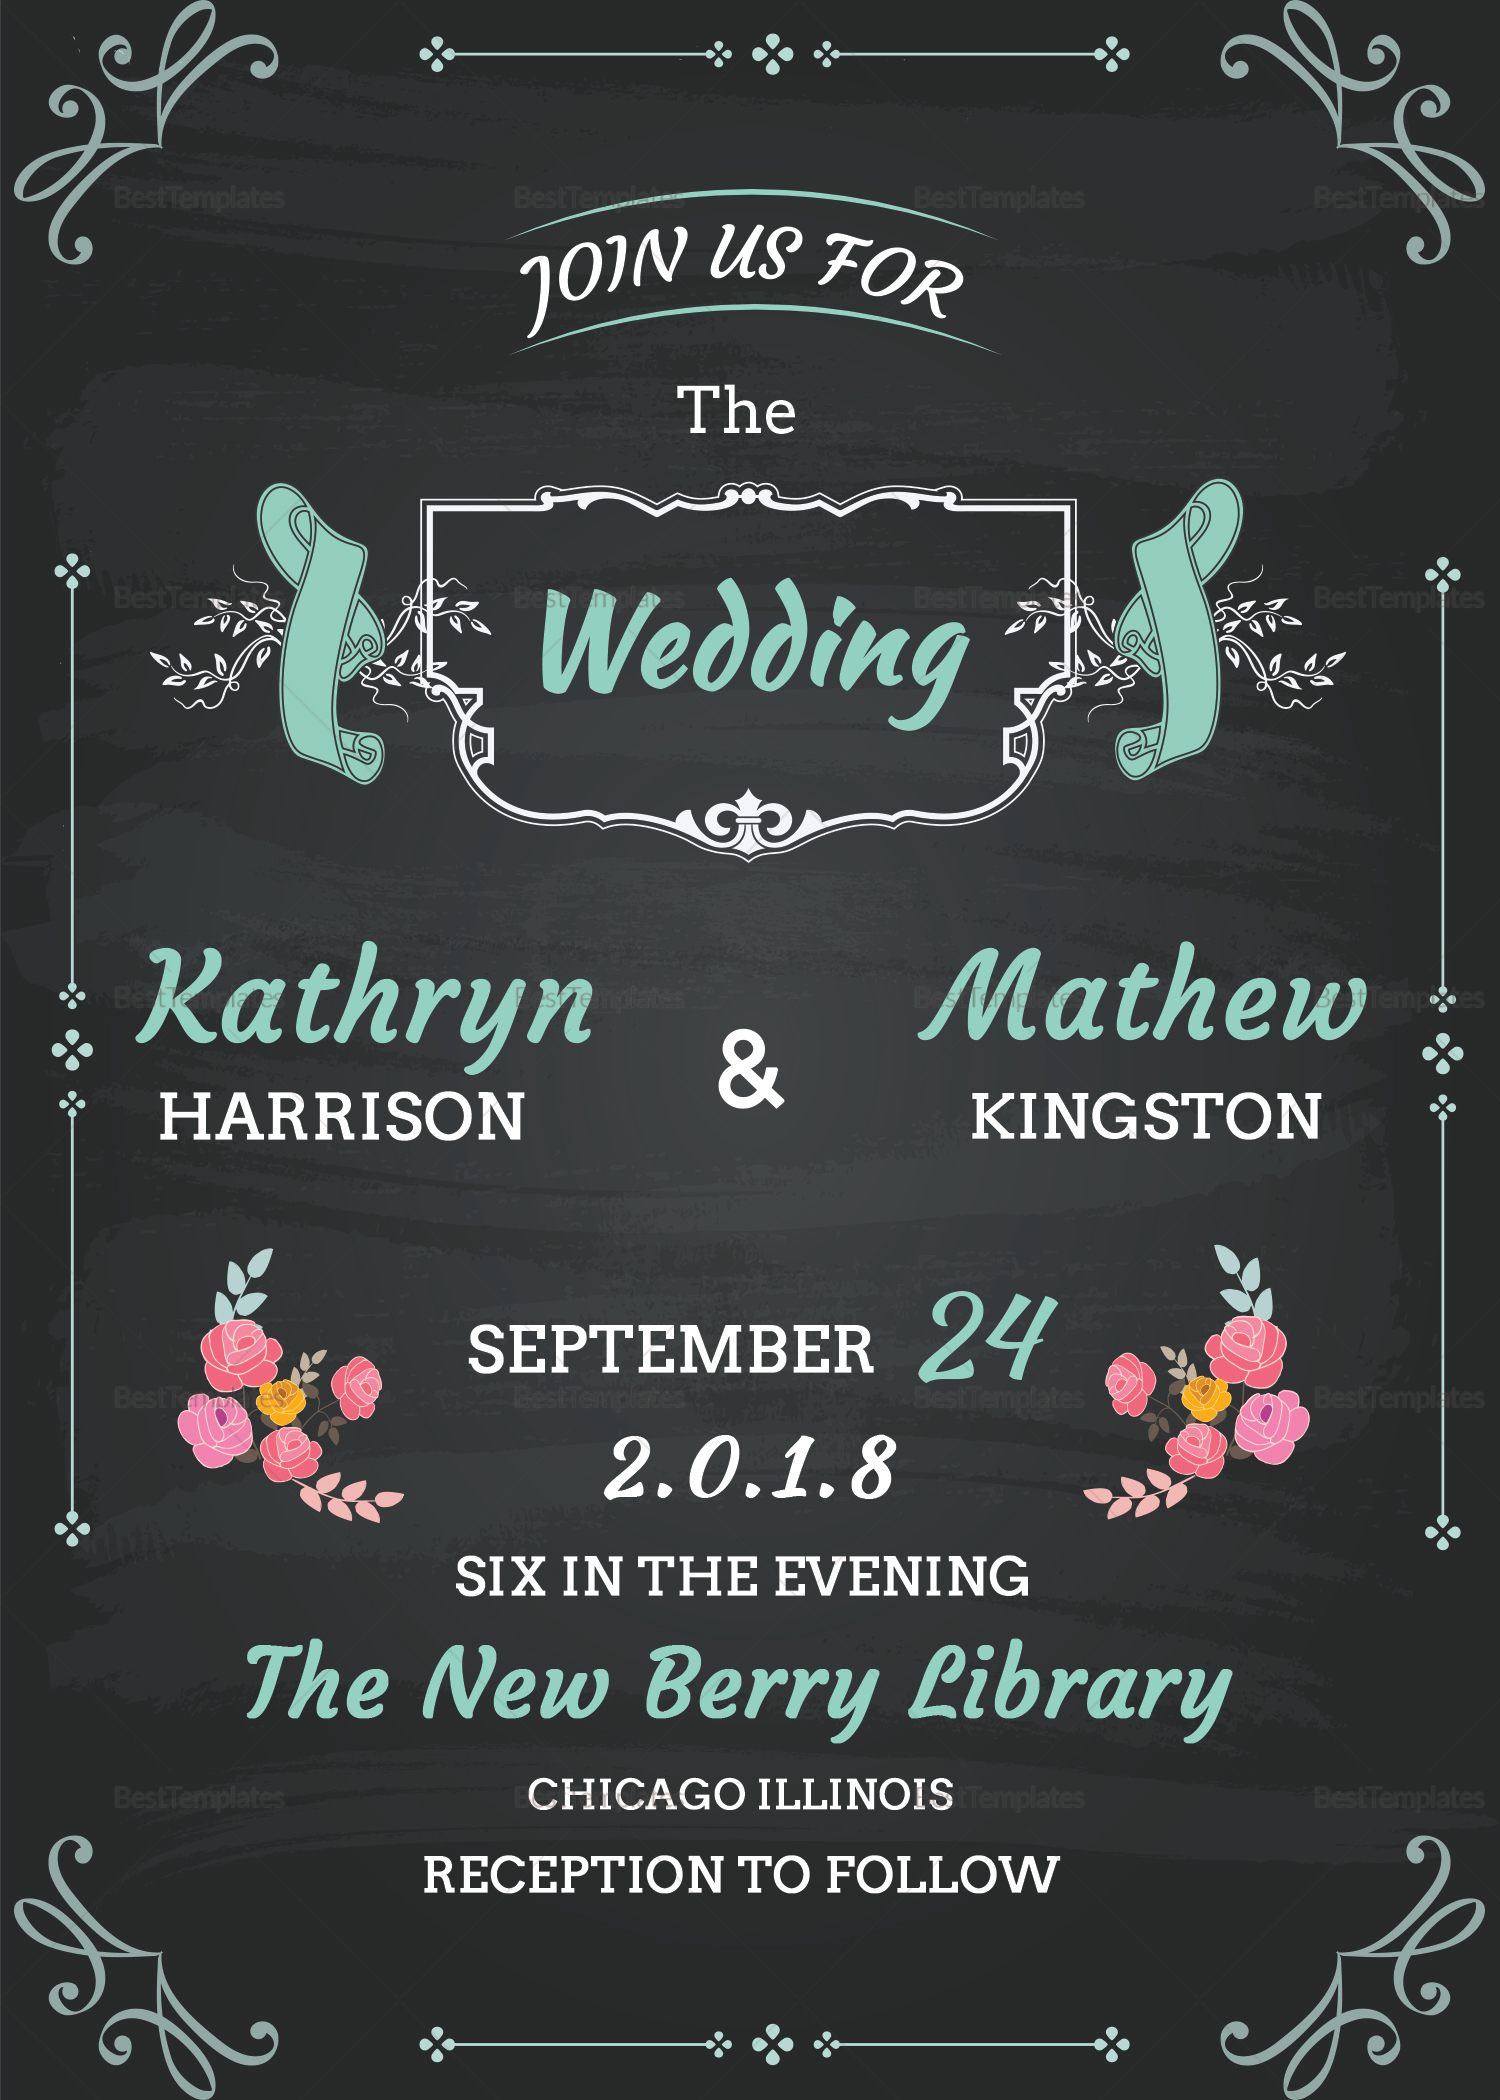 Chalkboard Wedding Invitation Card Design Template